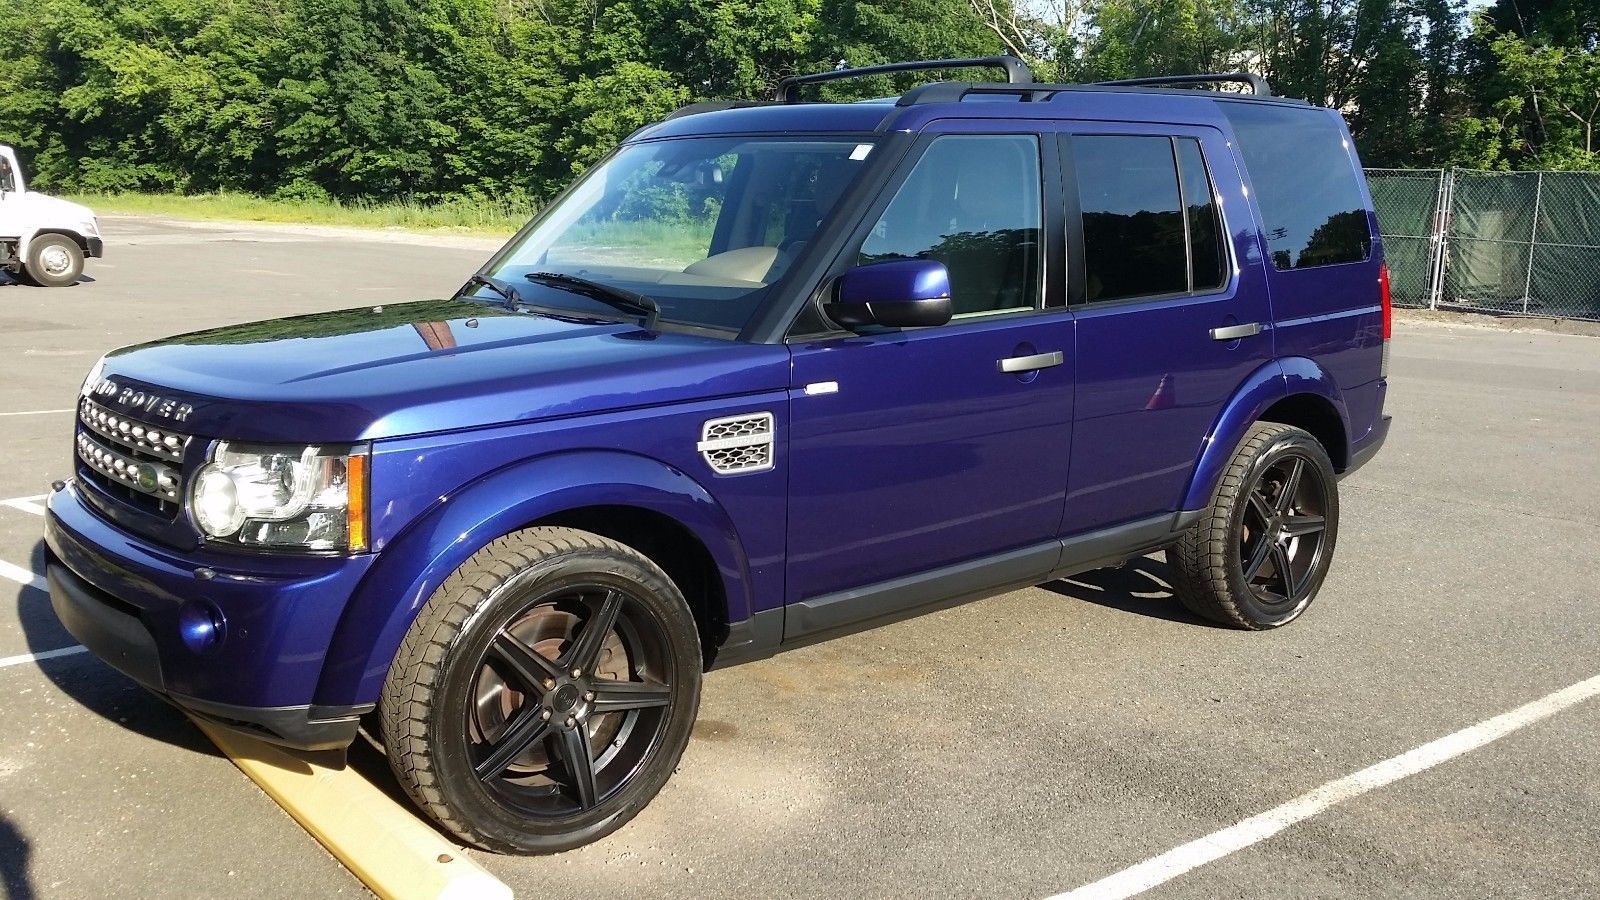 landrover rover auto knh at ohio base land sales for vehicle sale akron